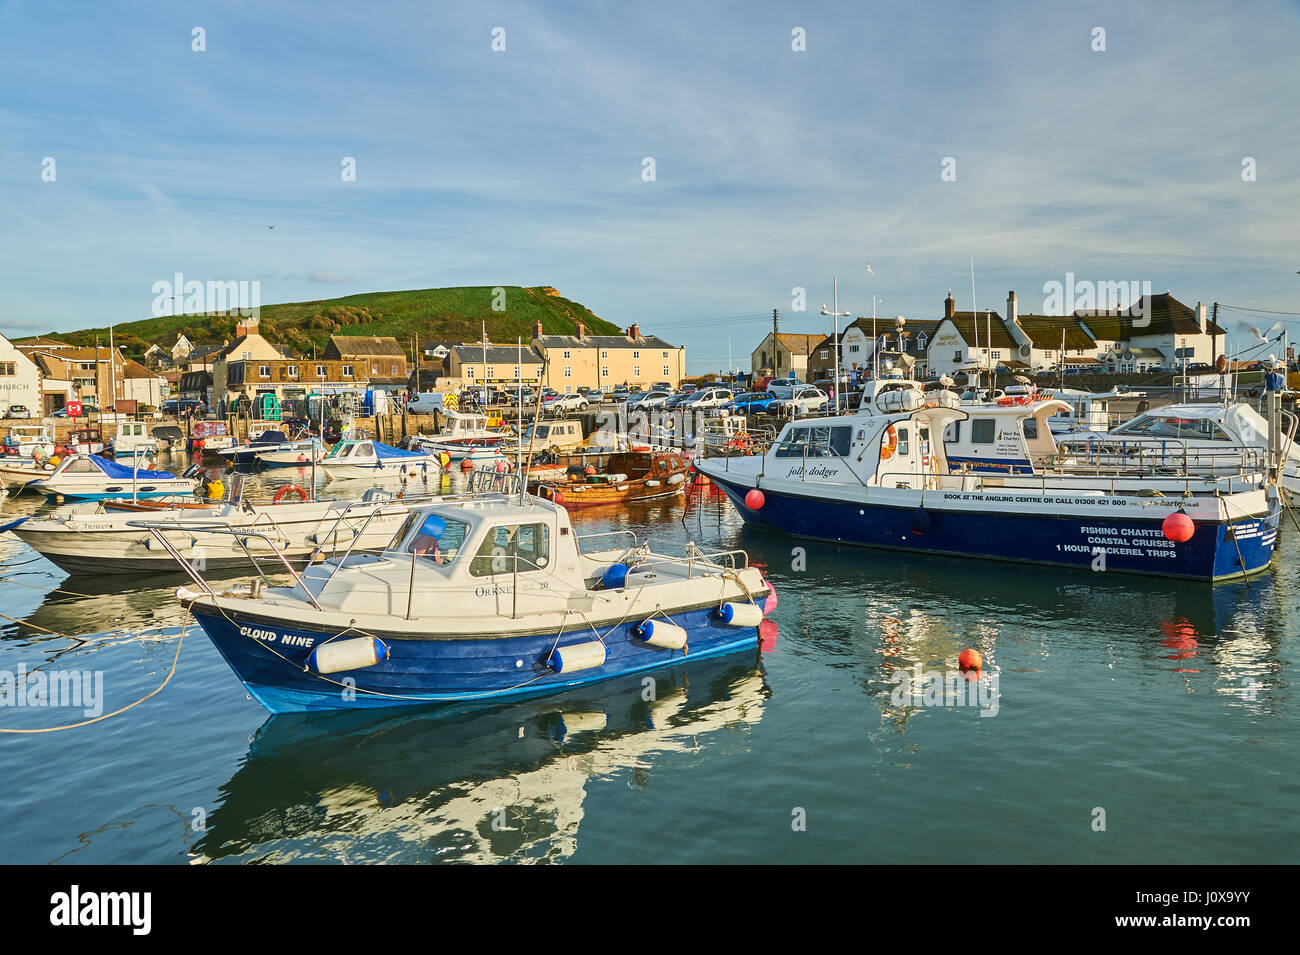 High tide fishing boats and trawlers in the small seaside town of high tide fishing boats and trawlers in the small seaside town of west bay on dorsets jurassic coast geenschuldenfo Gallery